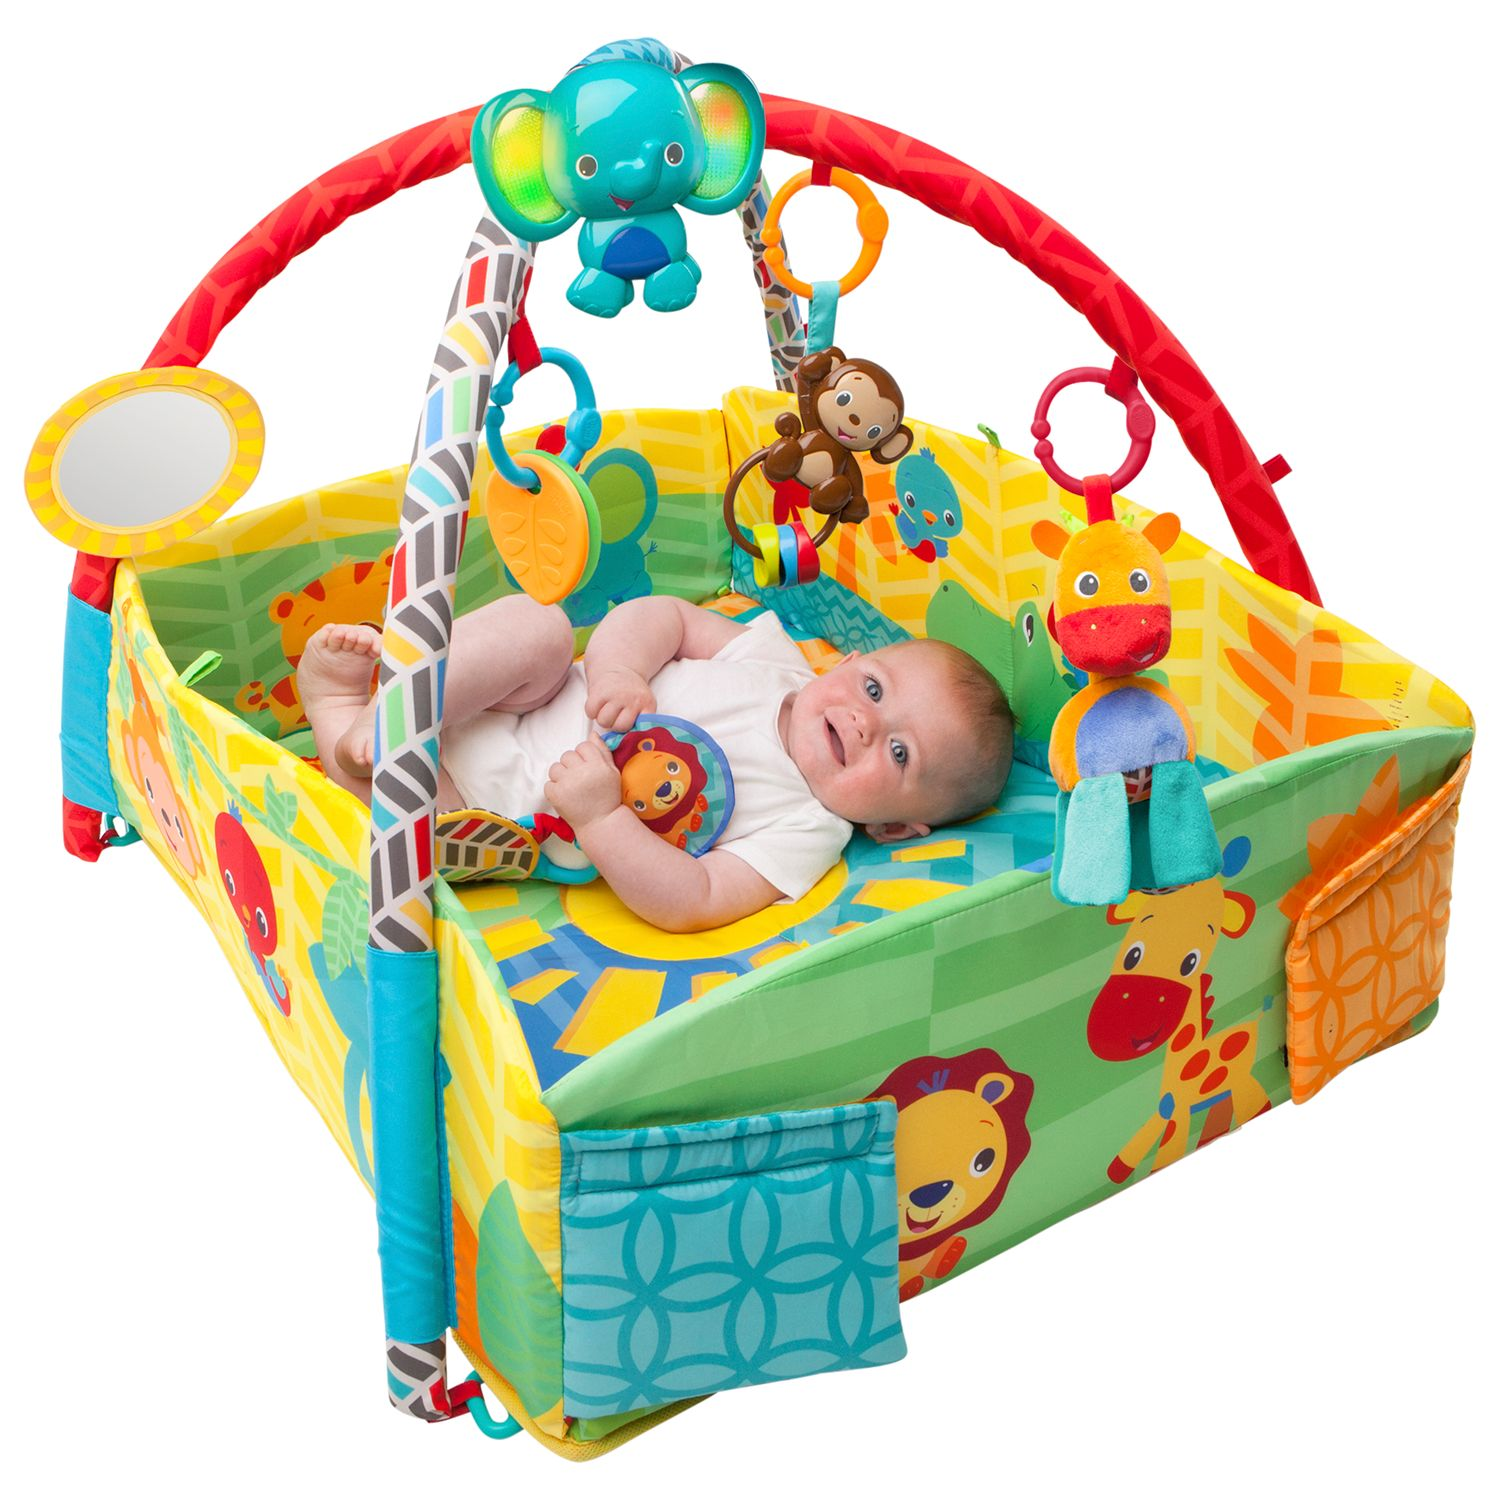 Bright Starts Bright Starts Sensory Sunny Safari Baby Activity Gym